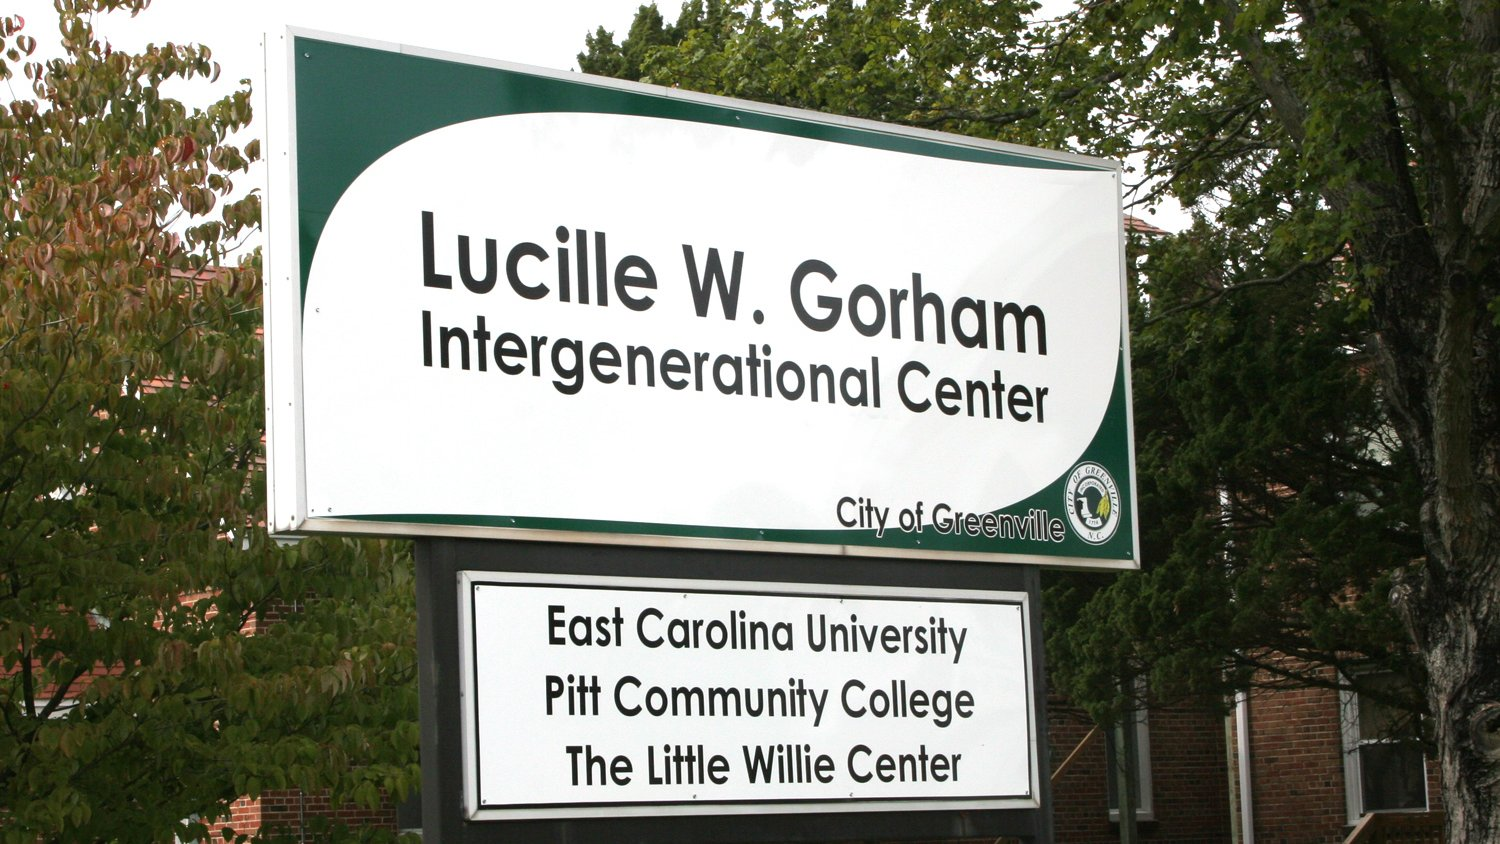 Intergenerational Center sign in West Greenville.